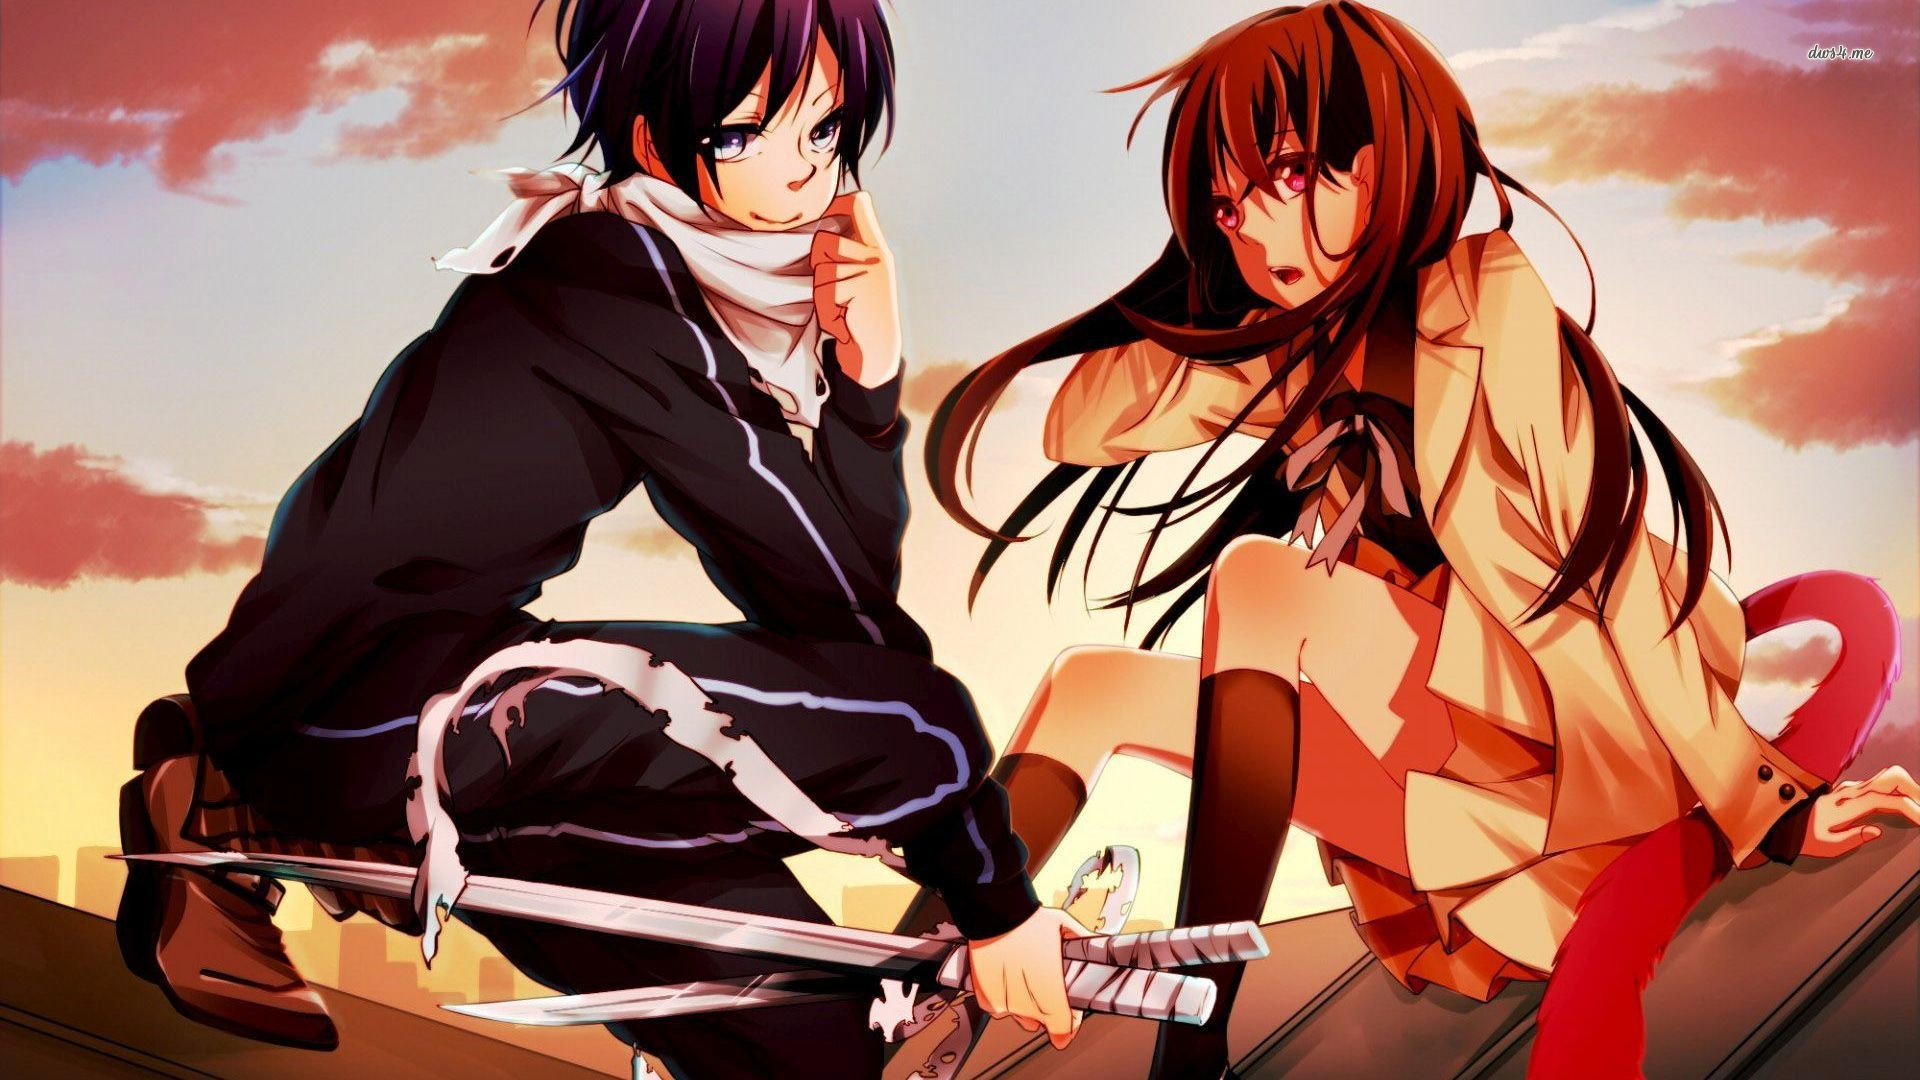 Noragami wallpaper – Anime wallpapers – #30581